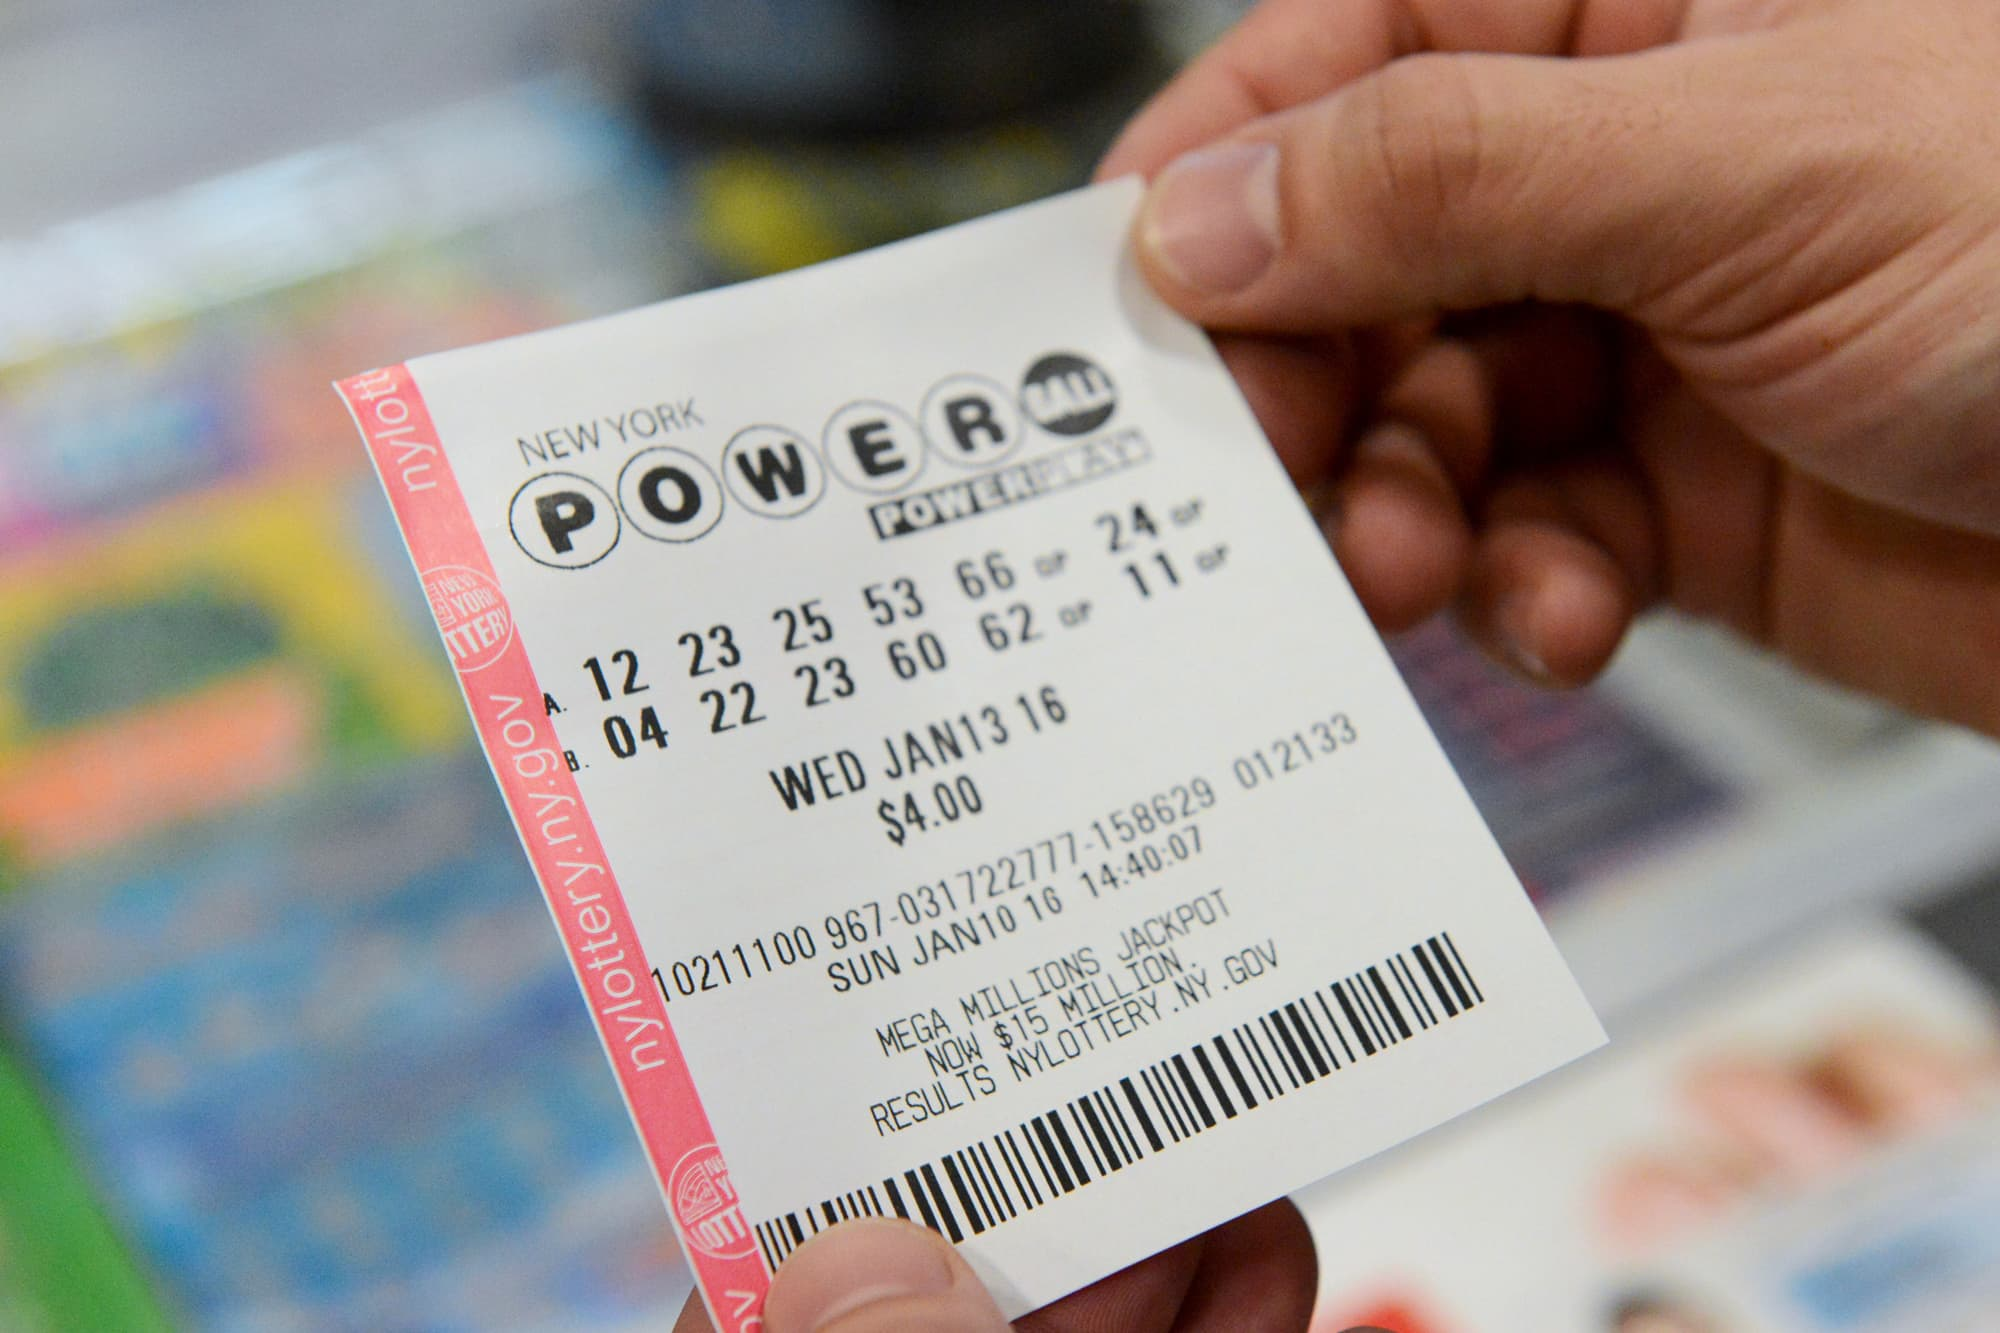 A mobile Powerball app wants to help millennials buy lottery